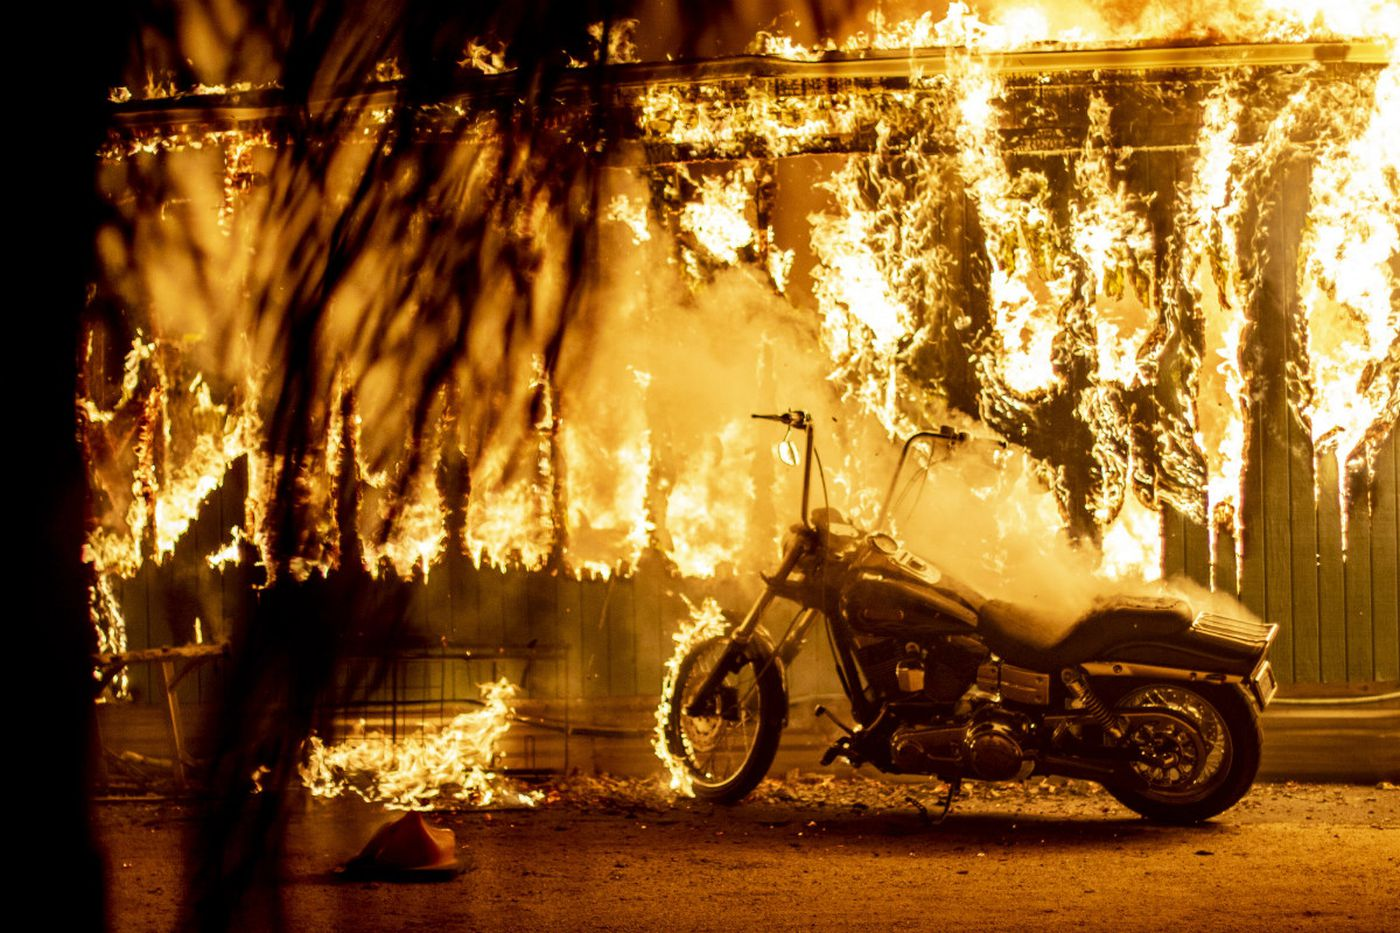 Death toll rises to 25, as 200,000 flee fires in California, the worst in state's history